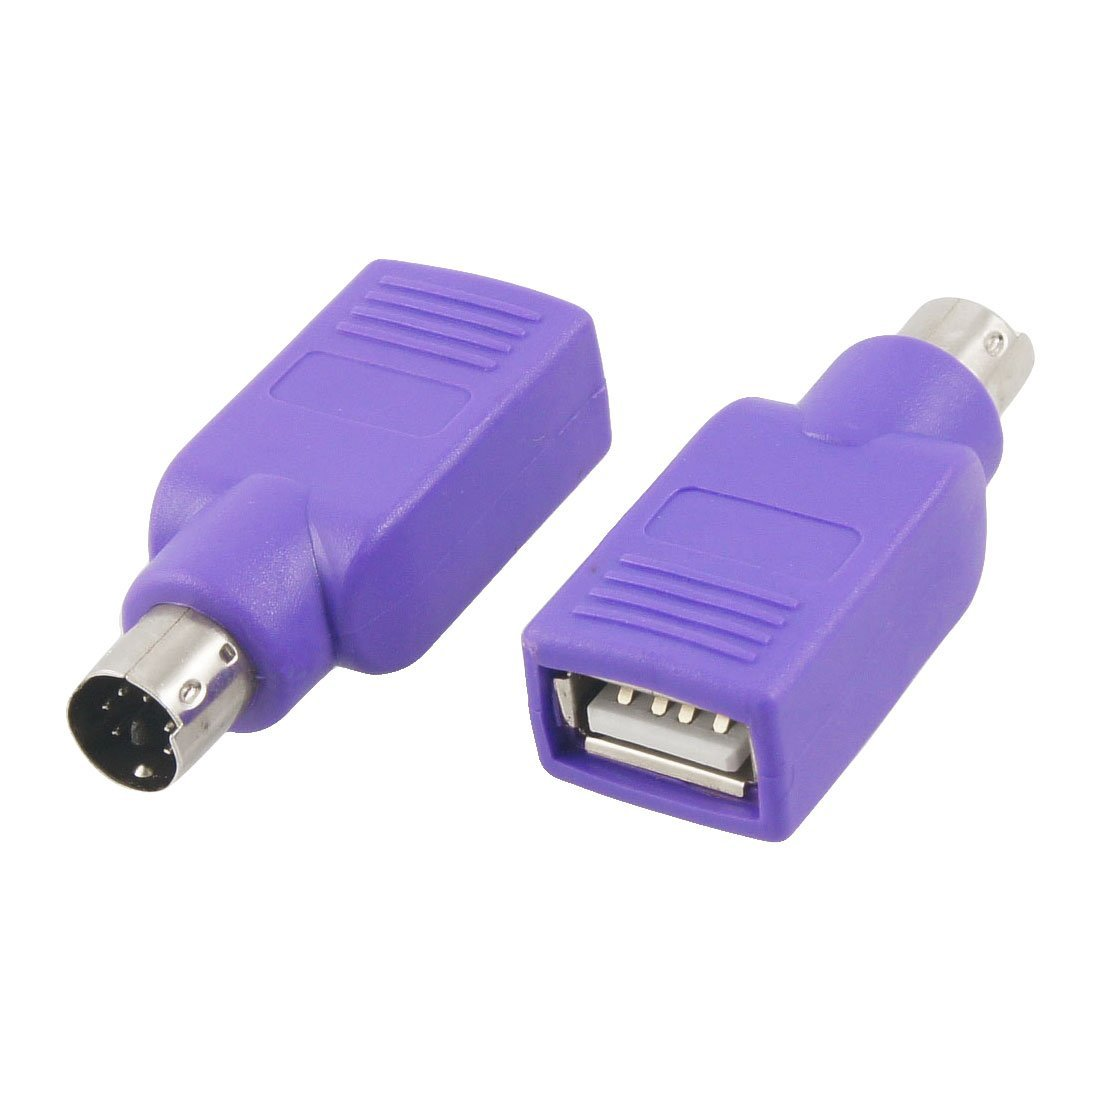 Keyboard USB to PS2 PS/2 Adapter Converter, Purple Color